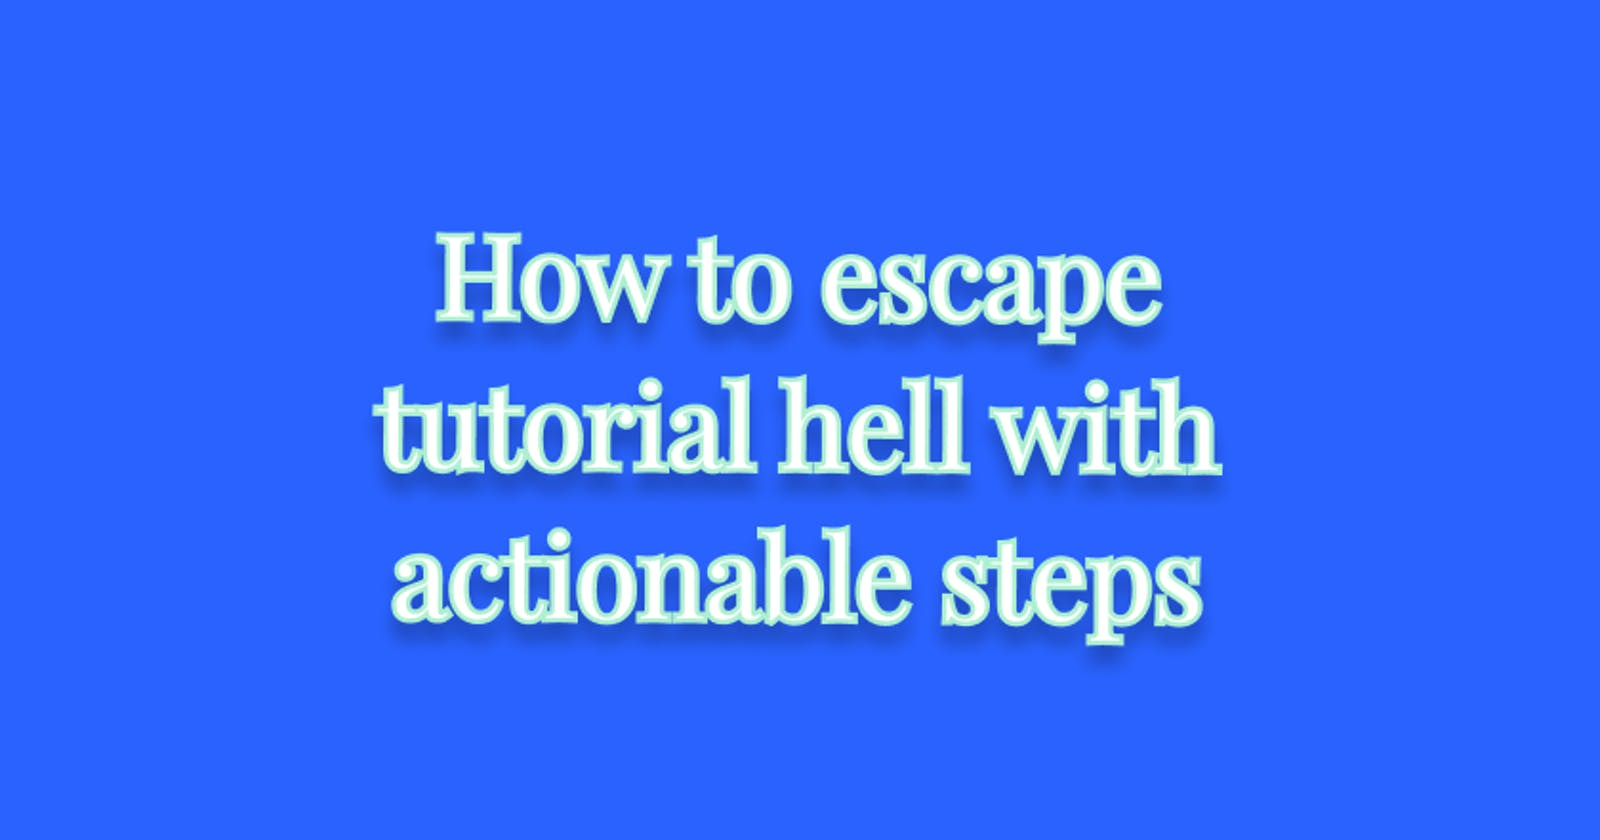 How to escape tutorial hell with actionable steps